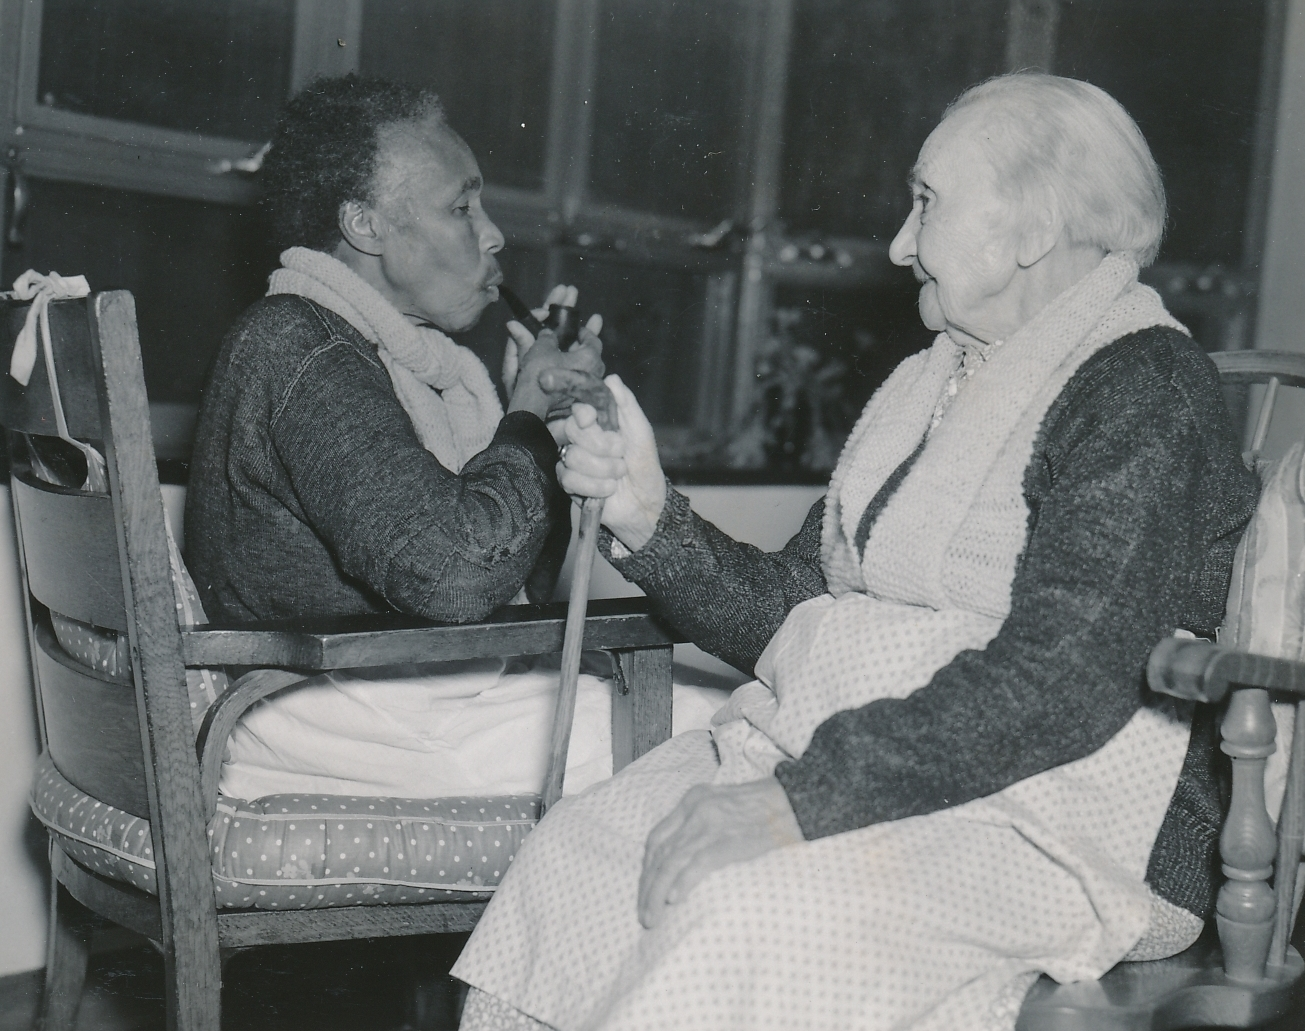 Two elderly residents of the Westchester County Home in Eastview, New York, built or improved by WPA workers. Photo courtesy of the National Archives (ca. 1935-1943).